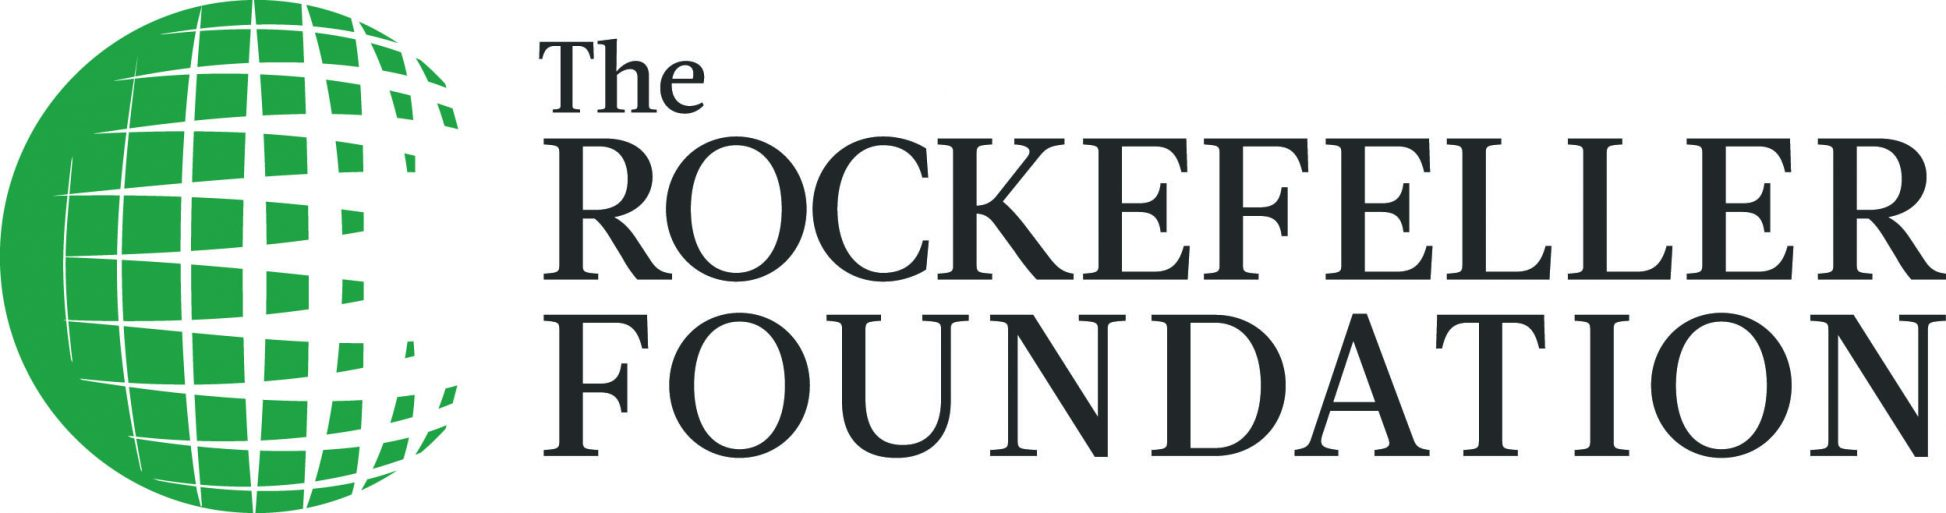 The Rockefeller Foundation - logo